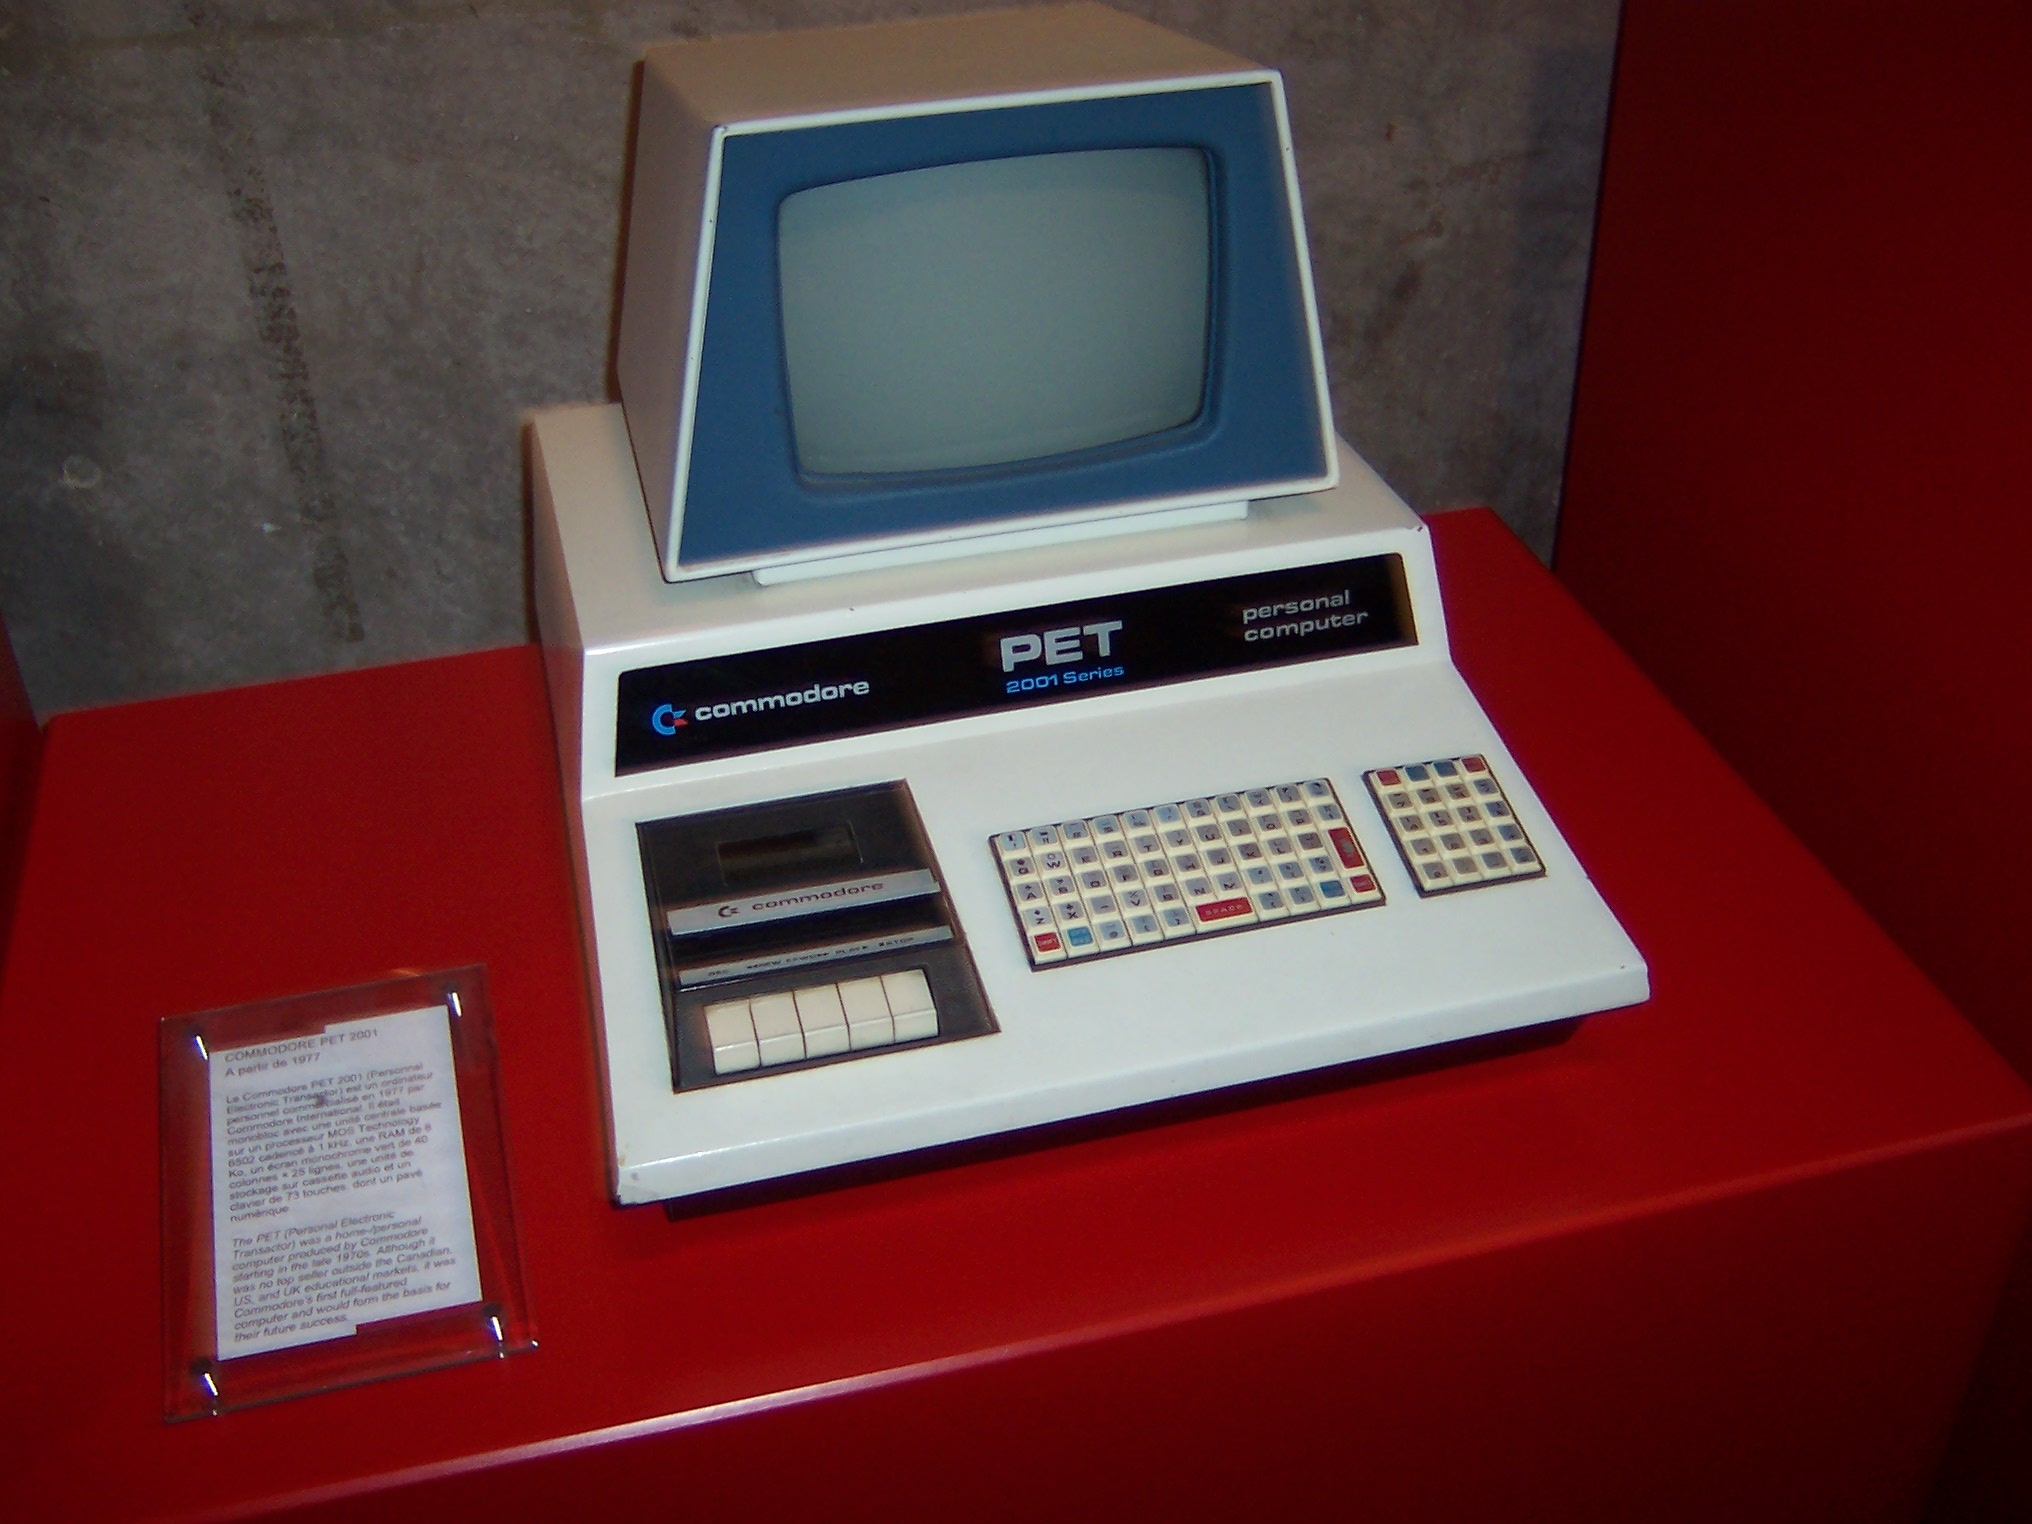 File:COMMODORE PET 2001 by Moehre1992.jpg - Wikimedia Commons